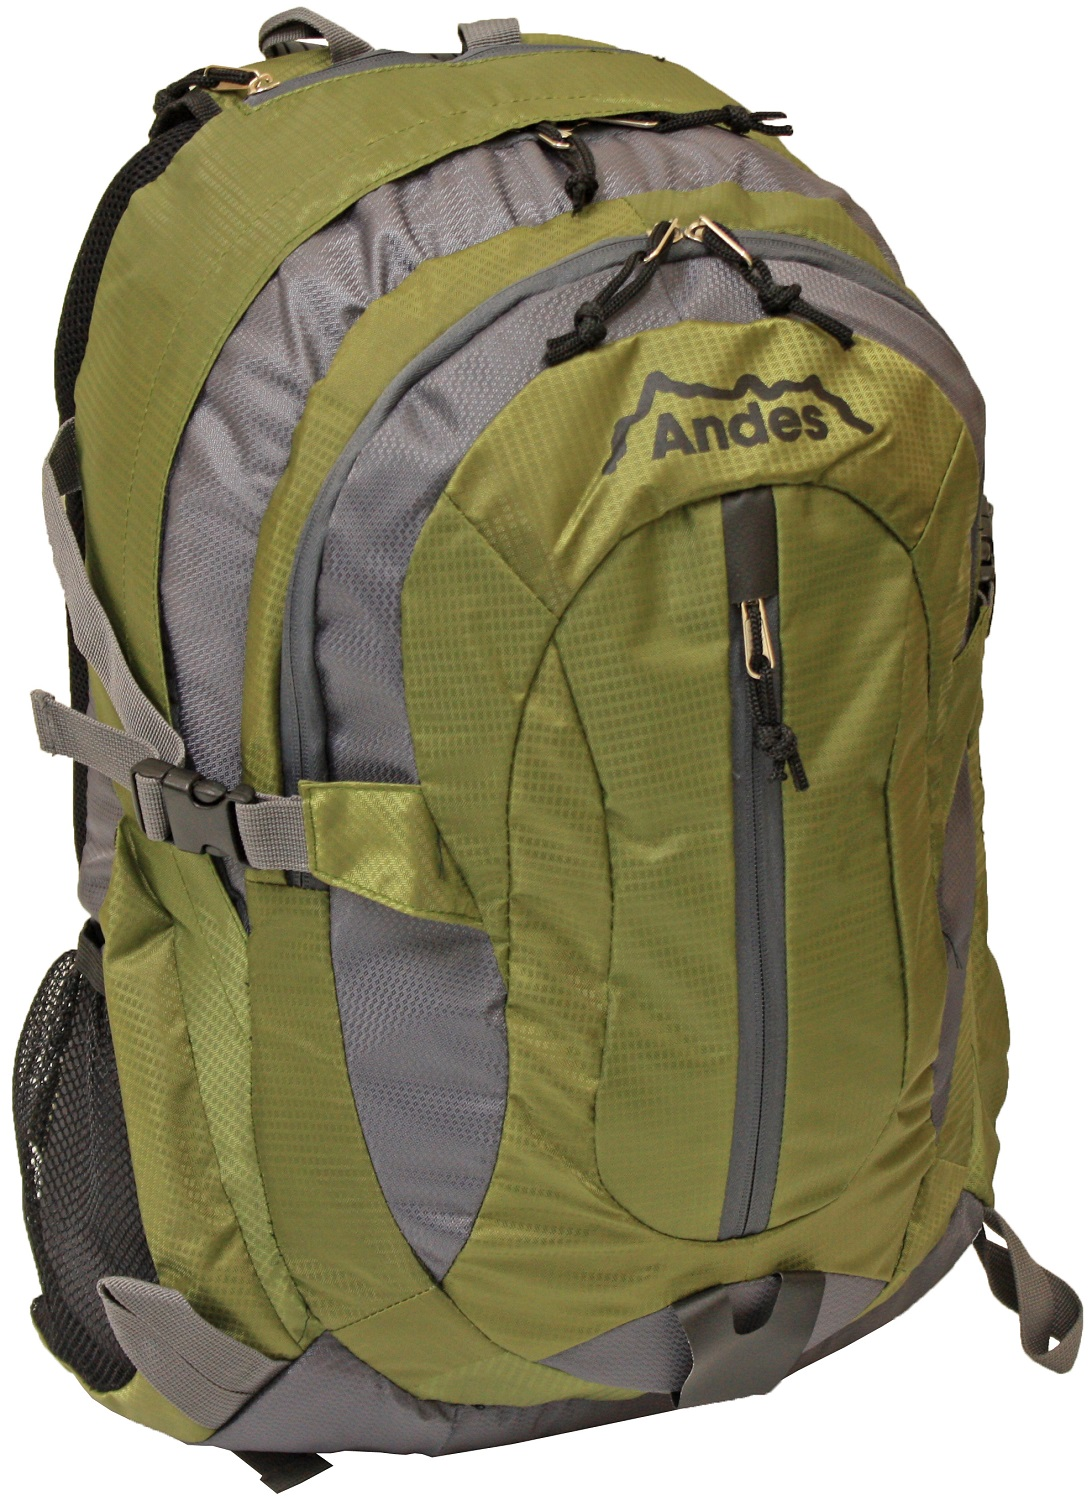 andes 35 litre camping rucksack backpack hiking travel bag. Black Bedroom Furniture Sets. Home Design Ideas